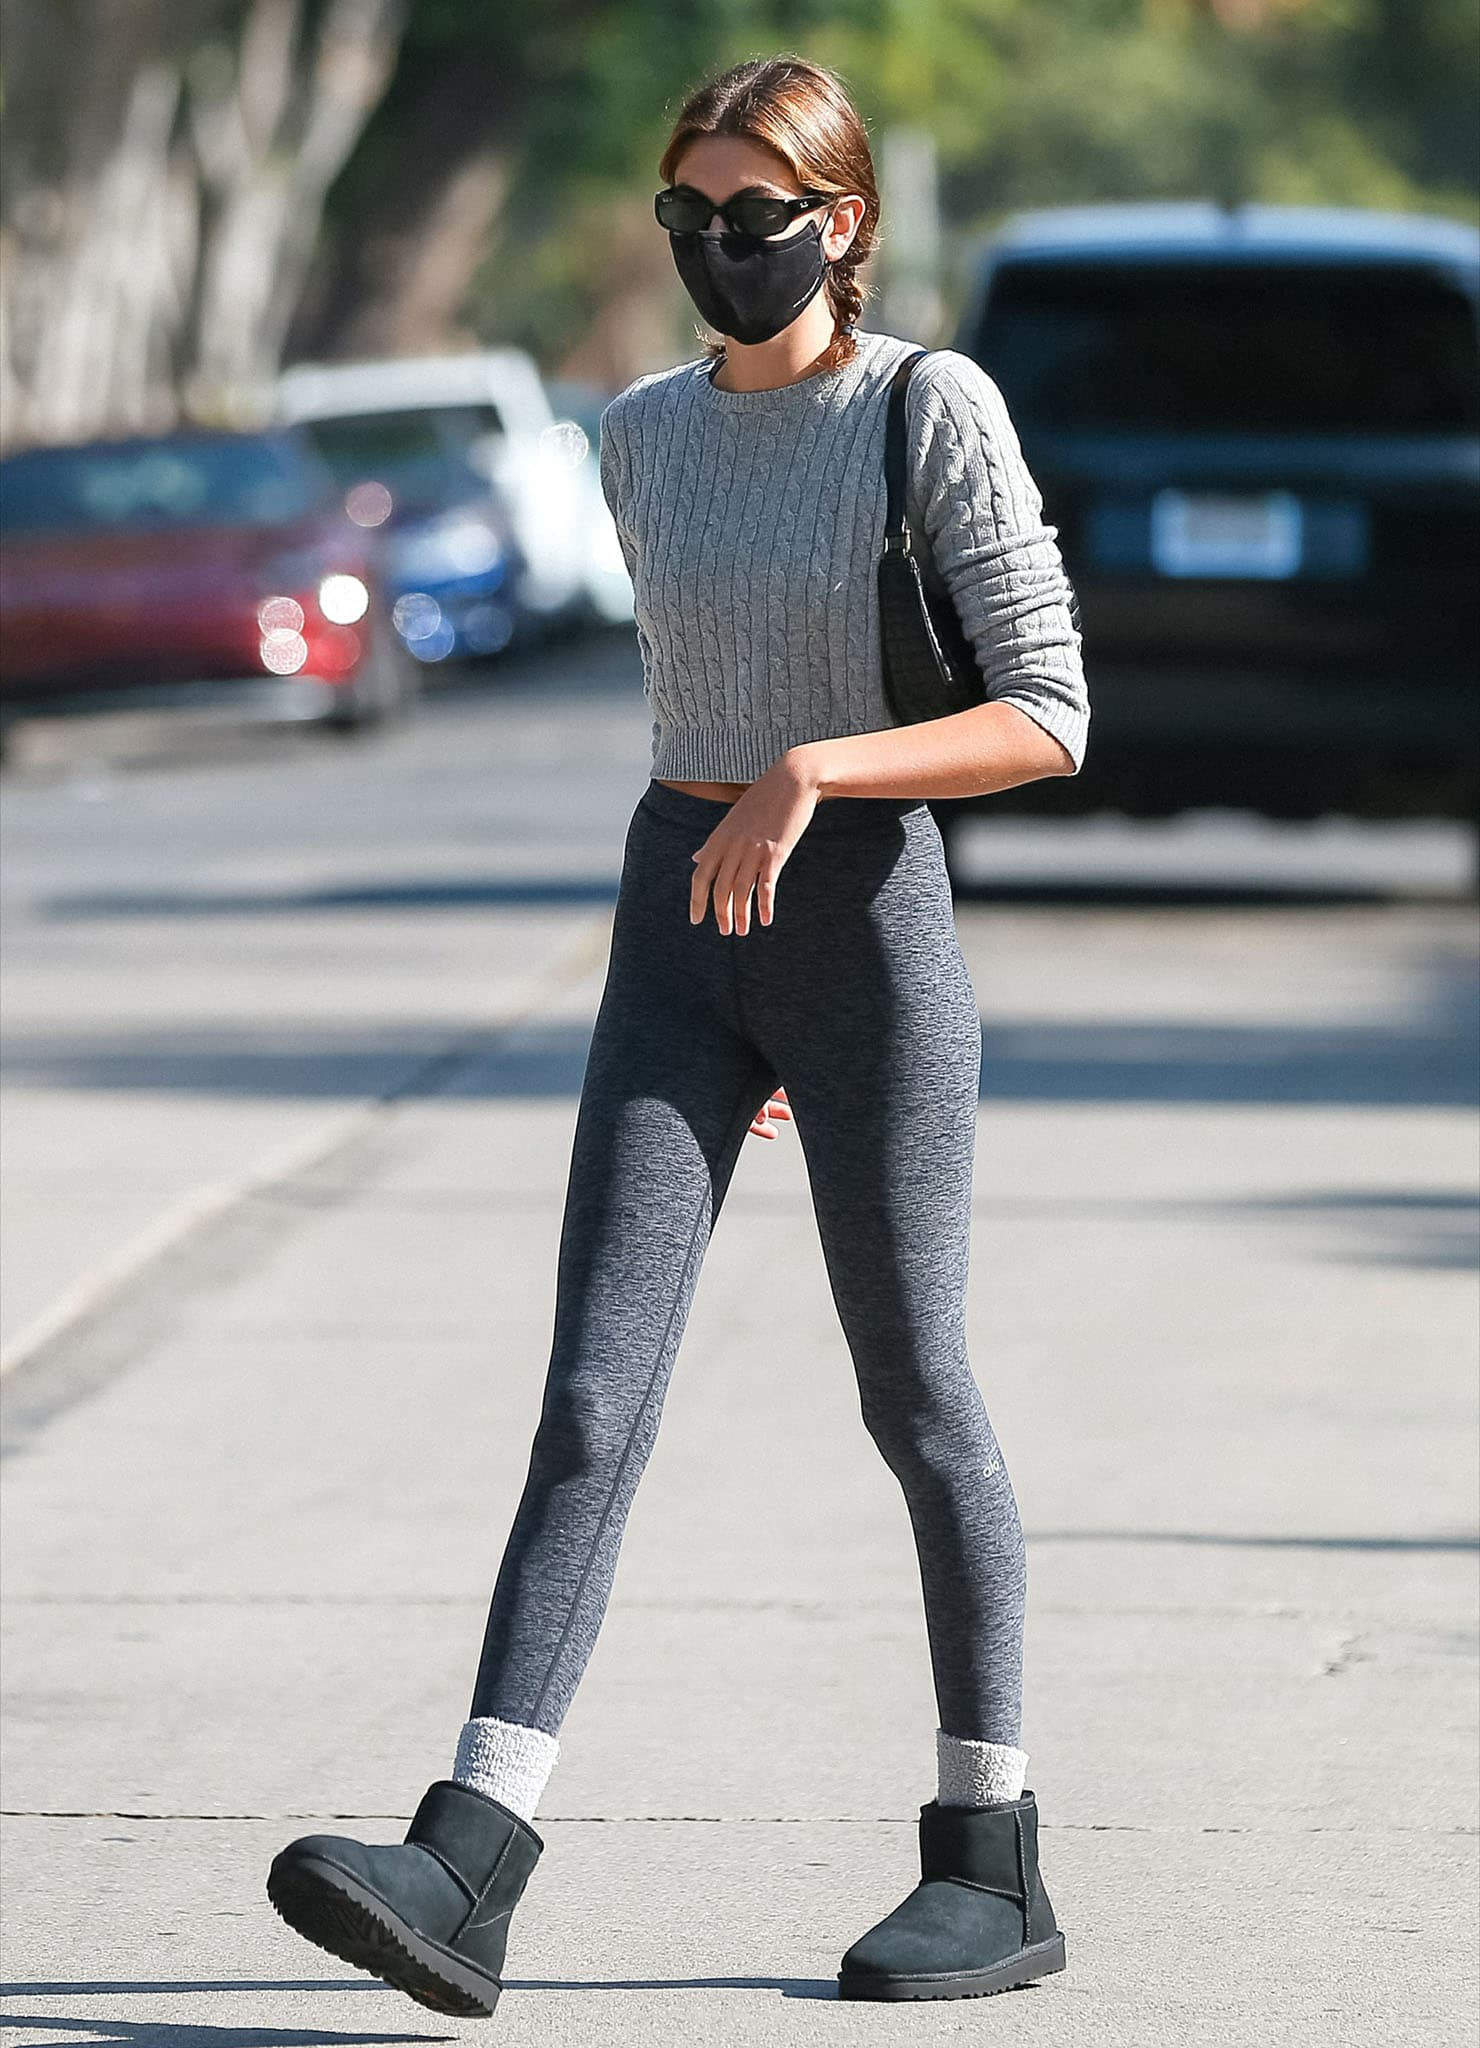 Kaia Gerber leaves Pilates class in Brandy Melville cable-knit sweater and Alo leggings on May 4, 2021